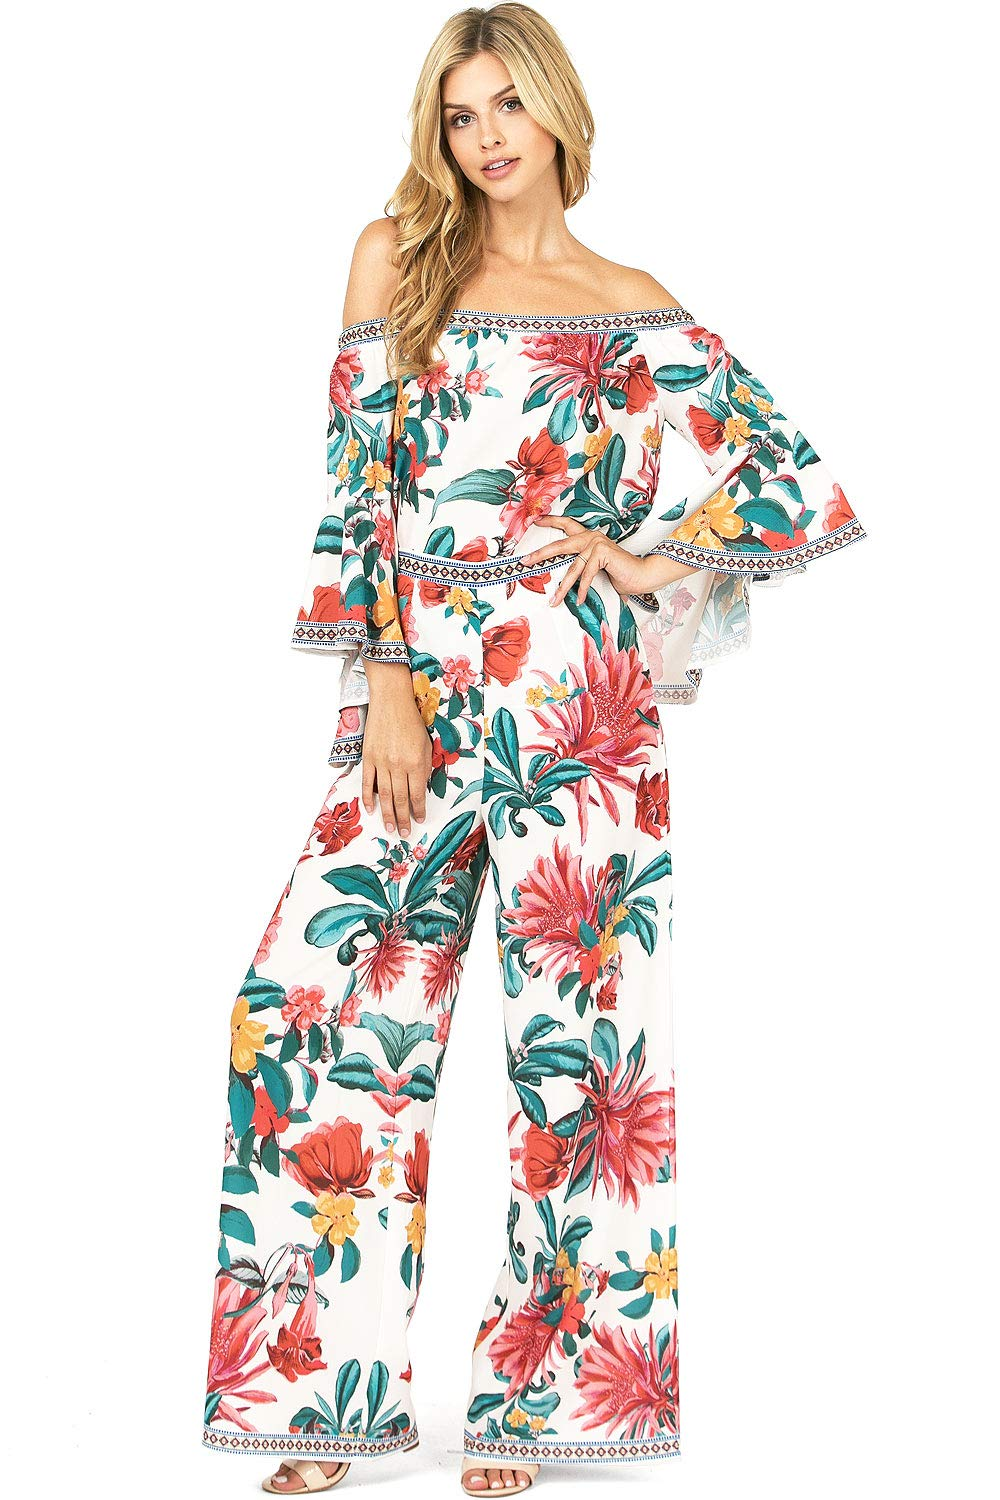 Flying Tomato Women's Matching Tropical Floral Print Outfit Top + Pants Set (L, Ivory)